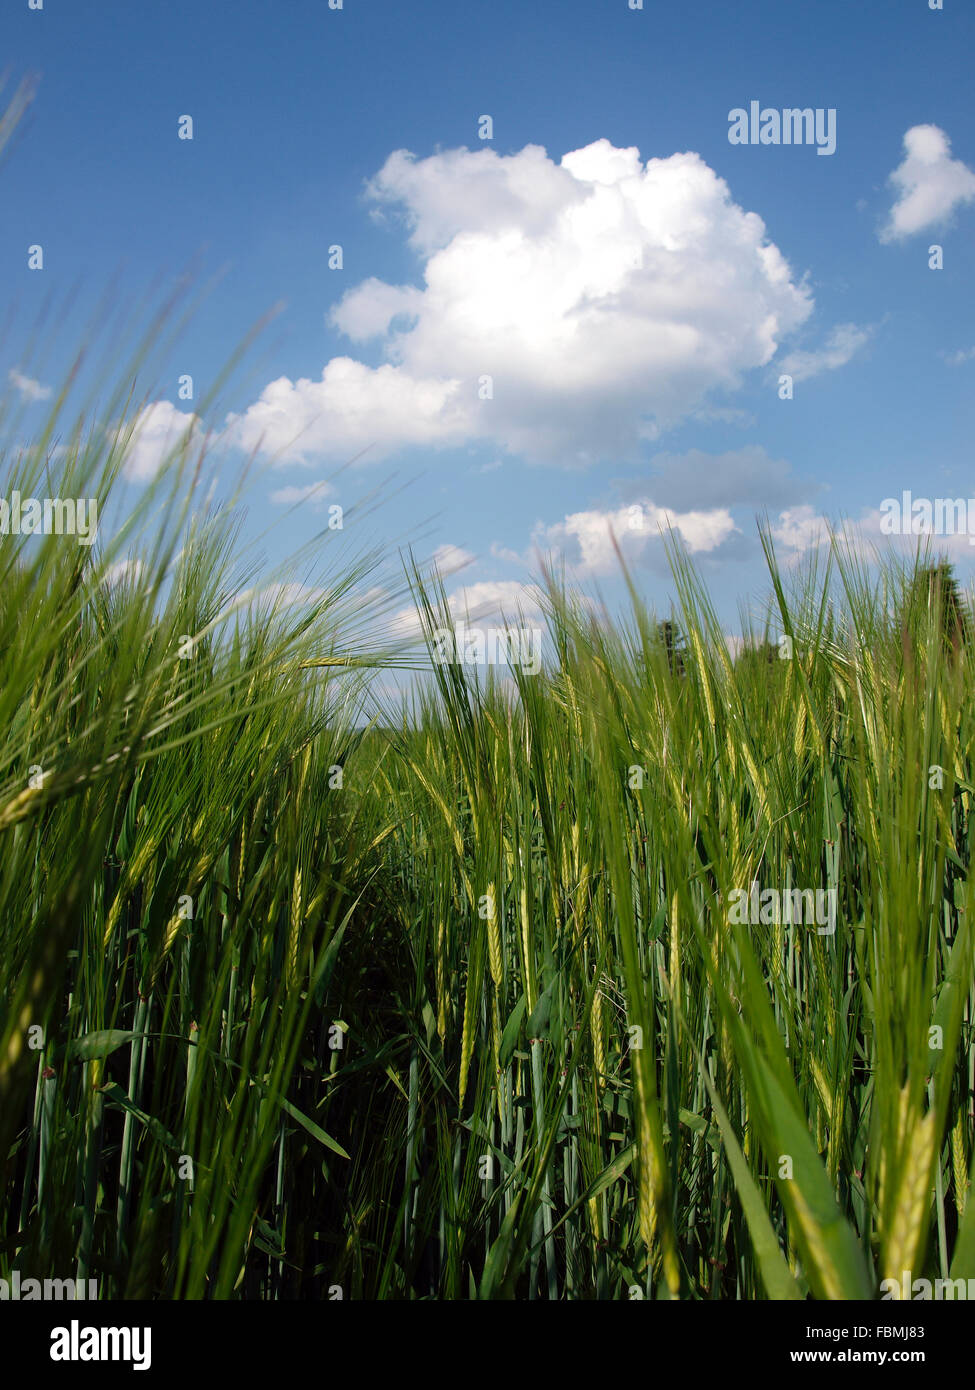 Close-Up Of Grass Against Blue Sky And Clouds - Stock Image